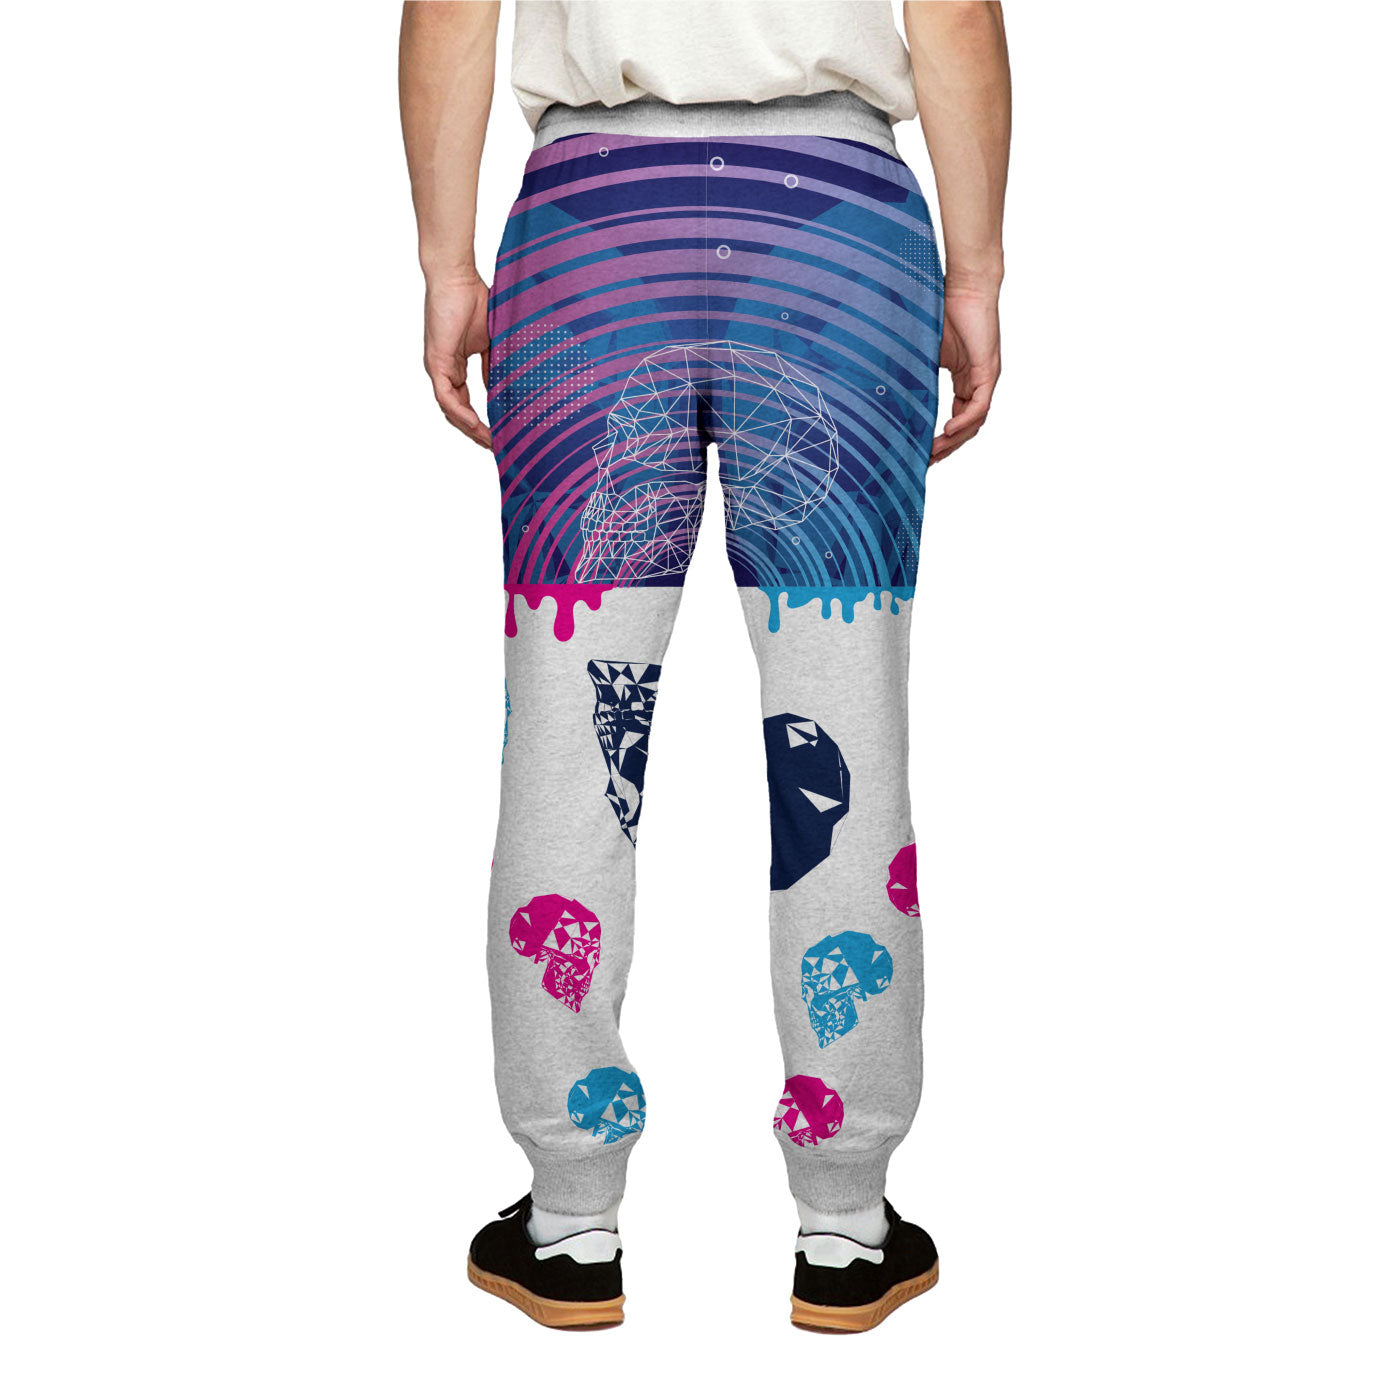 Dual Skull Sweatpants